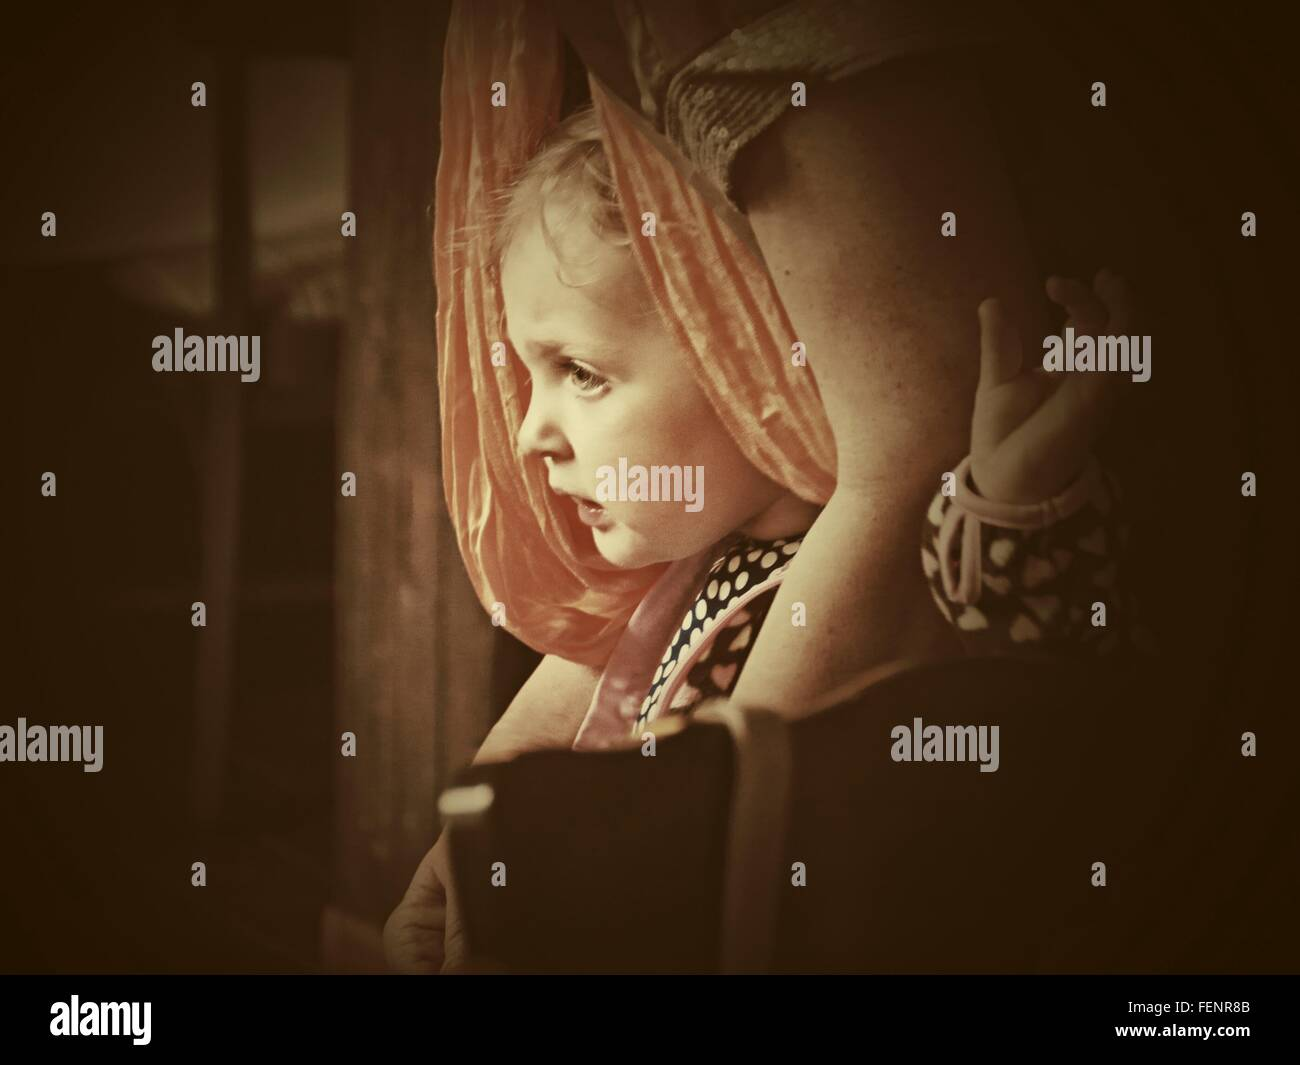 Girl with Mother Looking Out Window Photo Stock